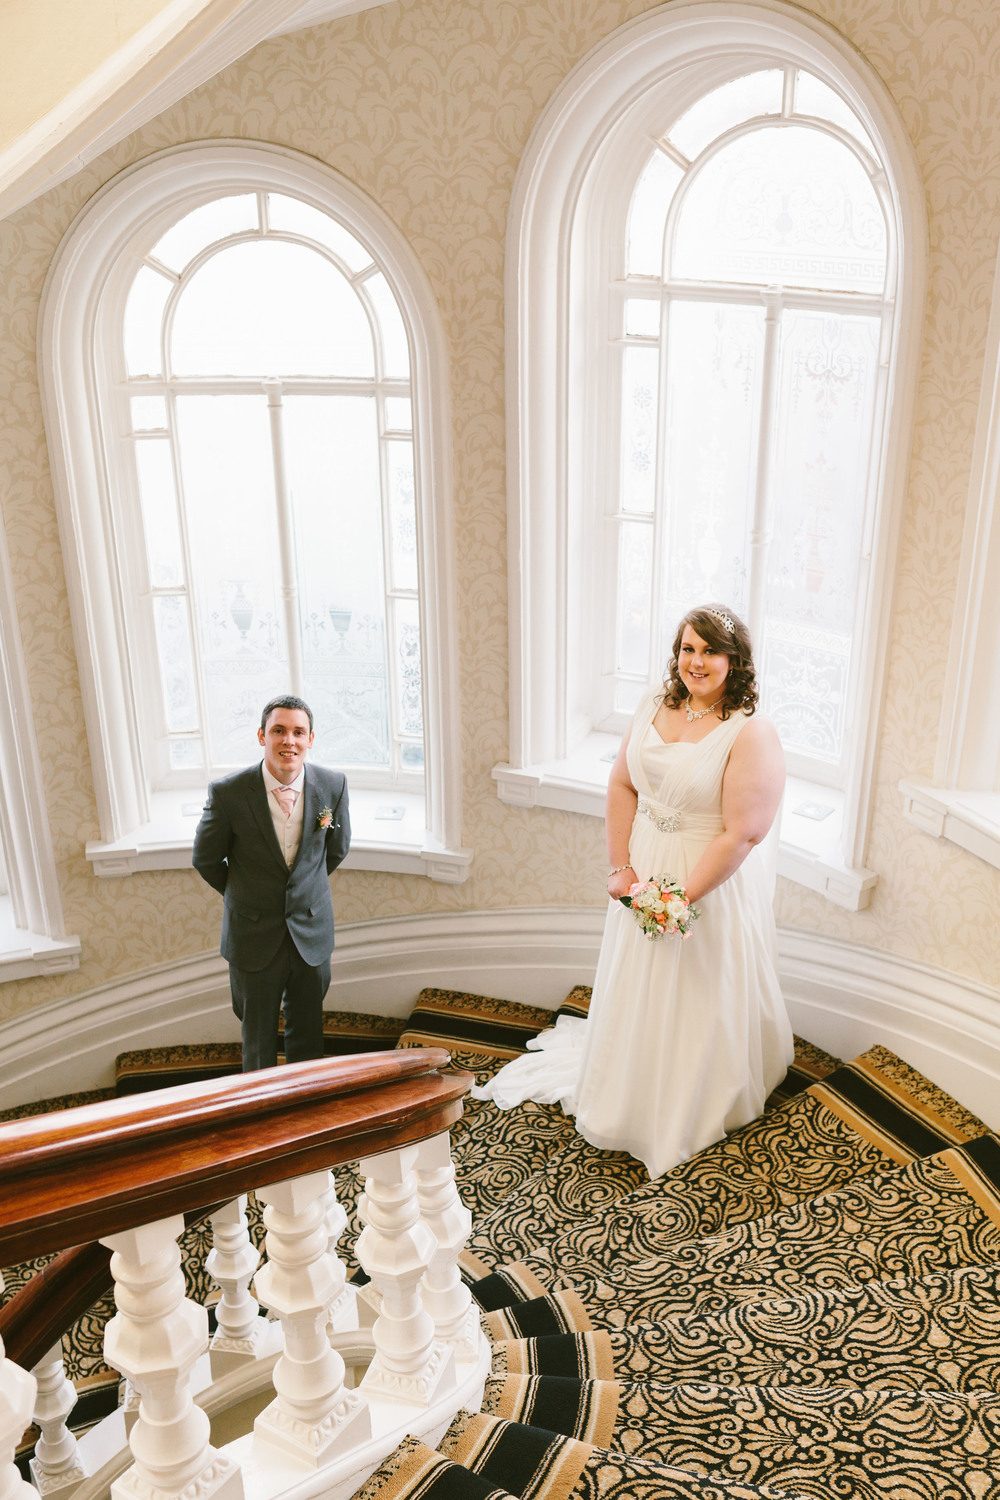 Newcastle Wedding Venue - Grand Hotel Tynemouth - Staircase and Windows